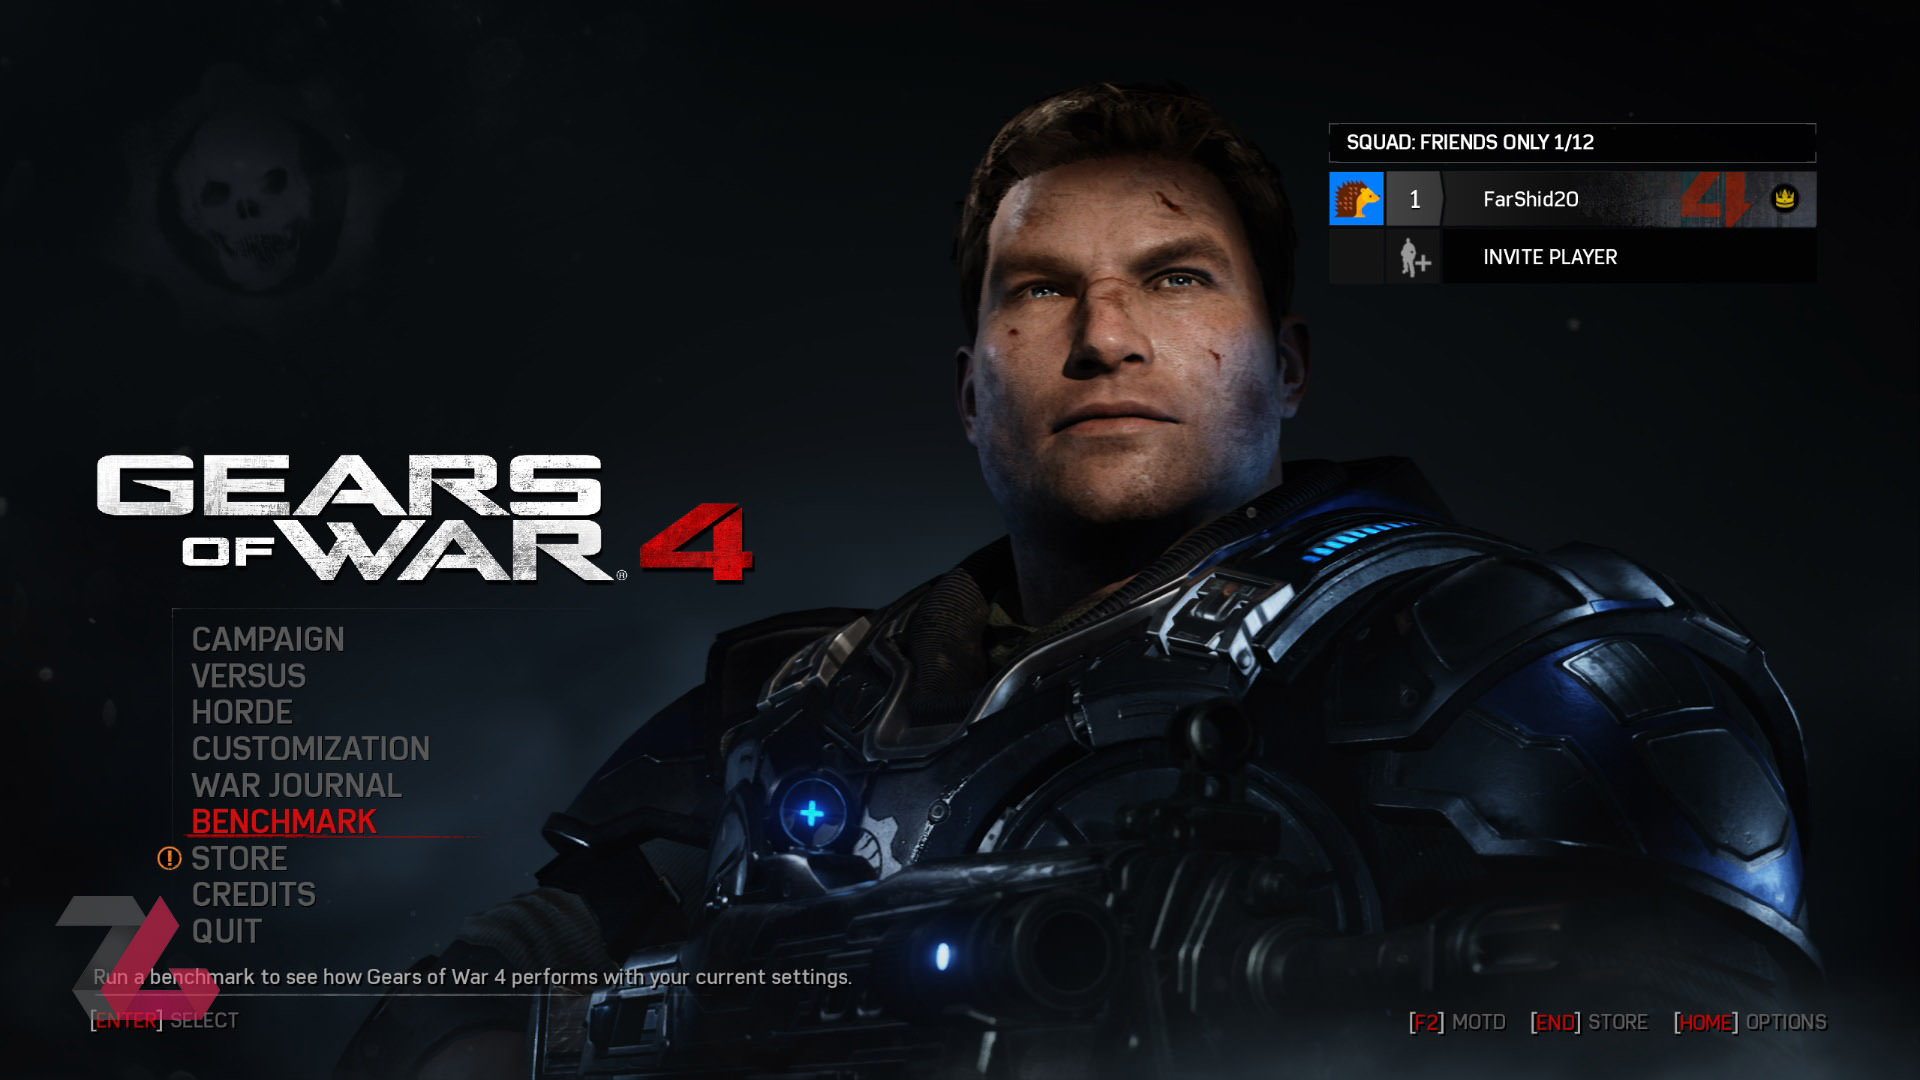 Gears of war 4 Main Menu PC Windows 10